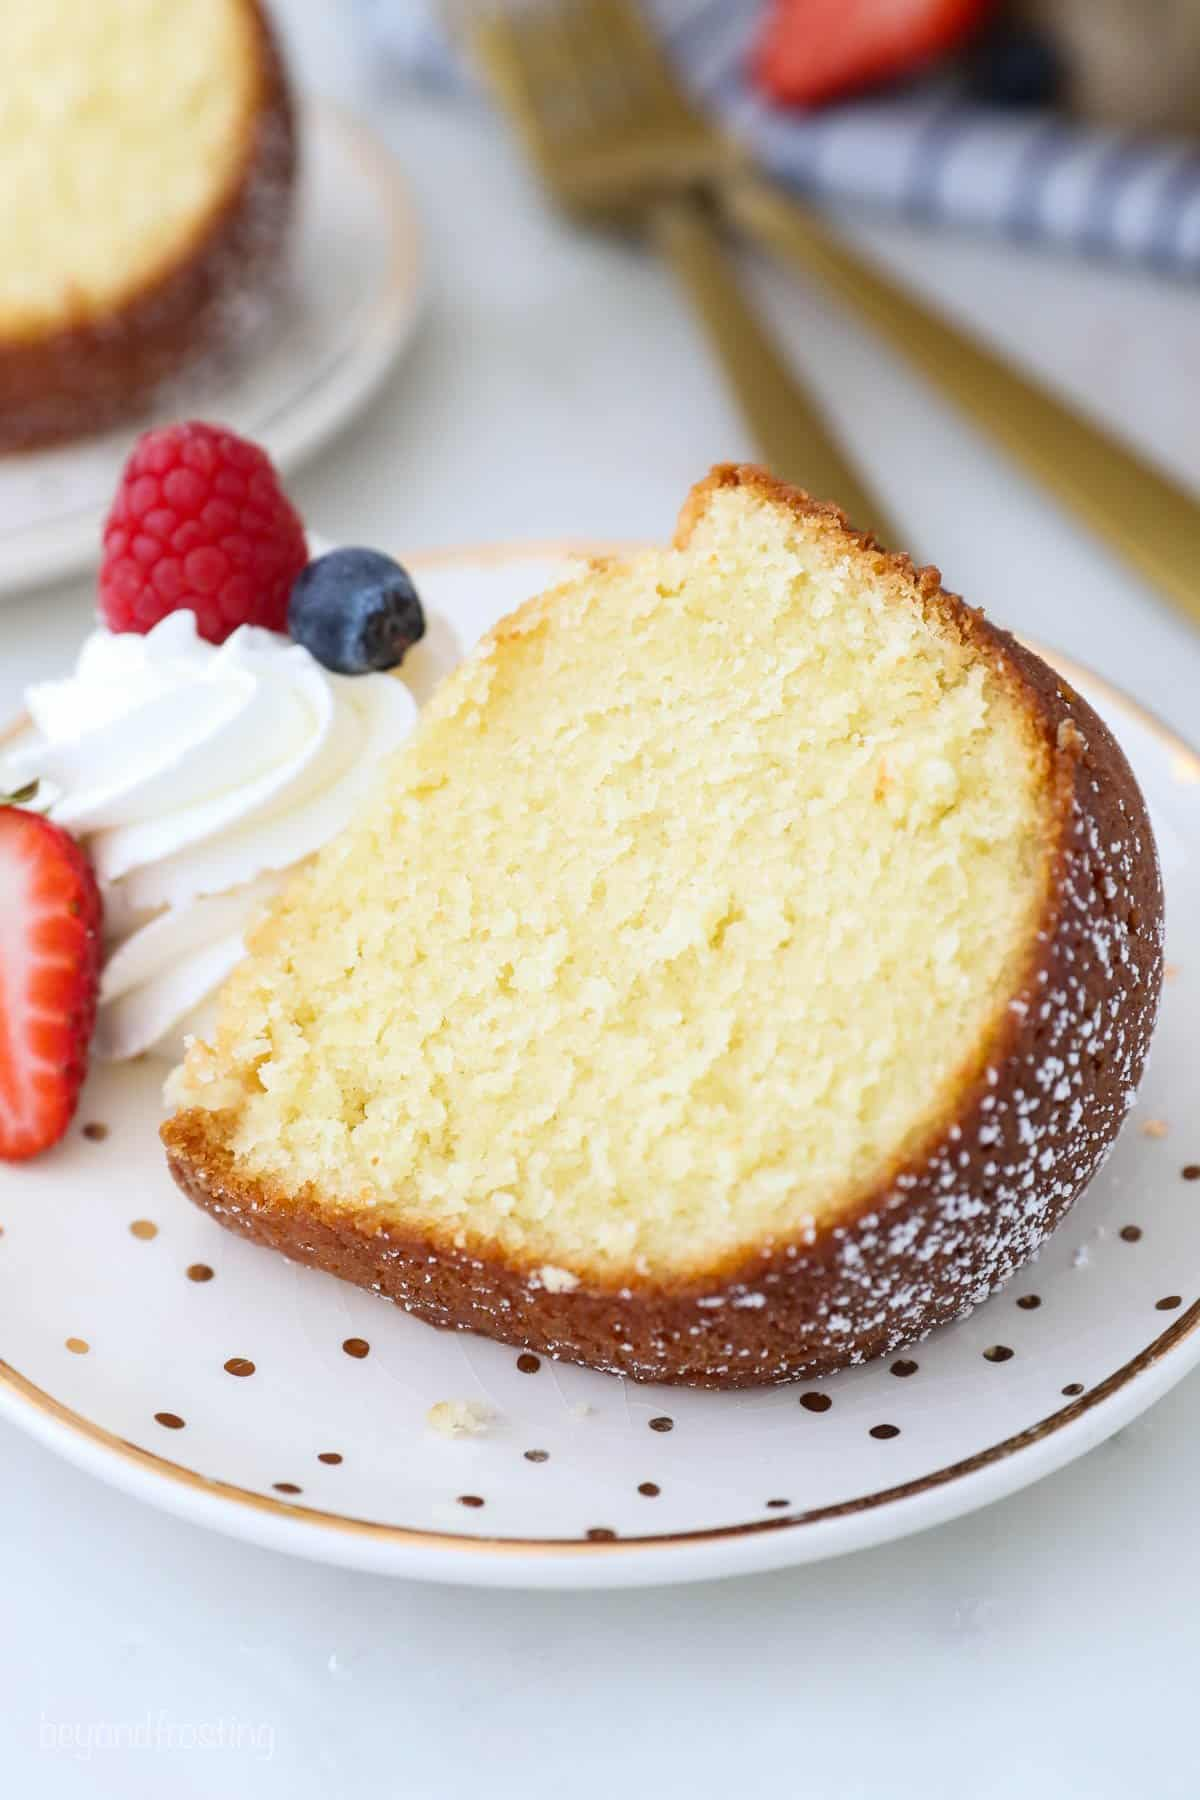 A slice of pound cake on a plate next to a dollop of whipped cream and fresh berries